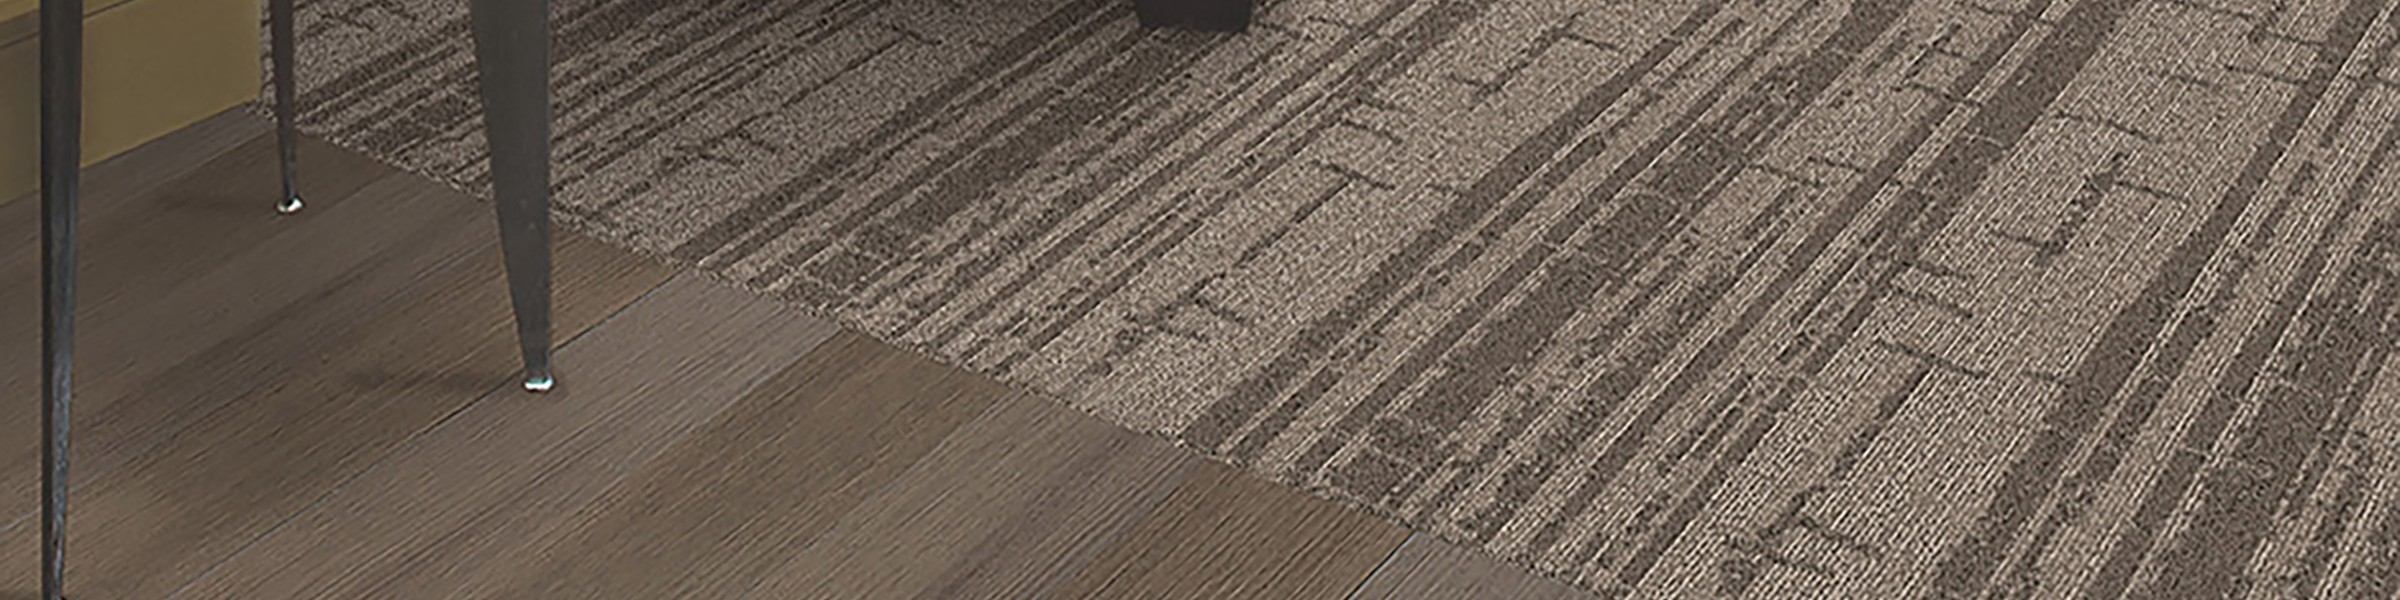 From The Leading Manufacturer Of Hospitality Flooring Durkan Select Is A Line Coordinating High Quality Products That Are Created To Work Perfectly